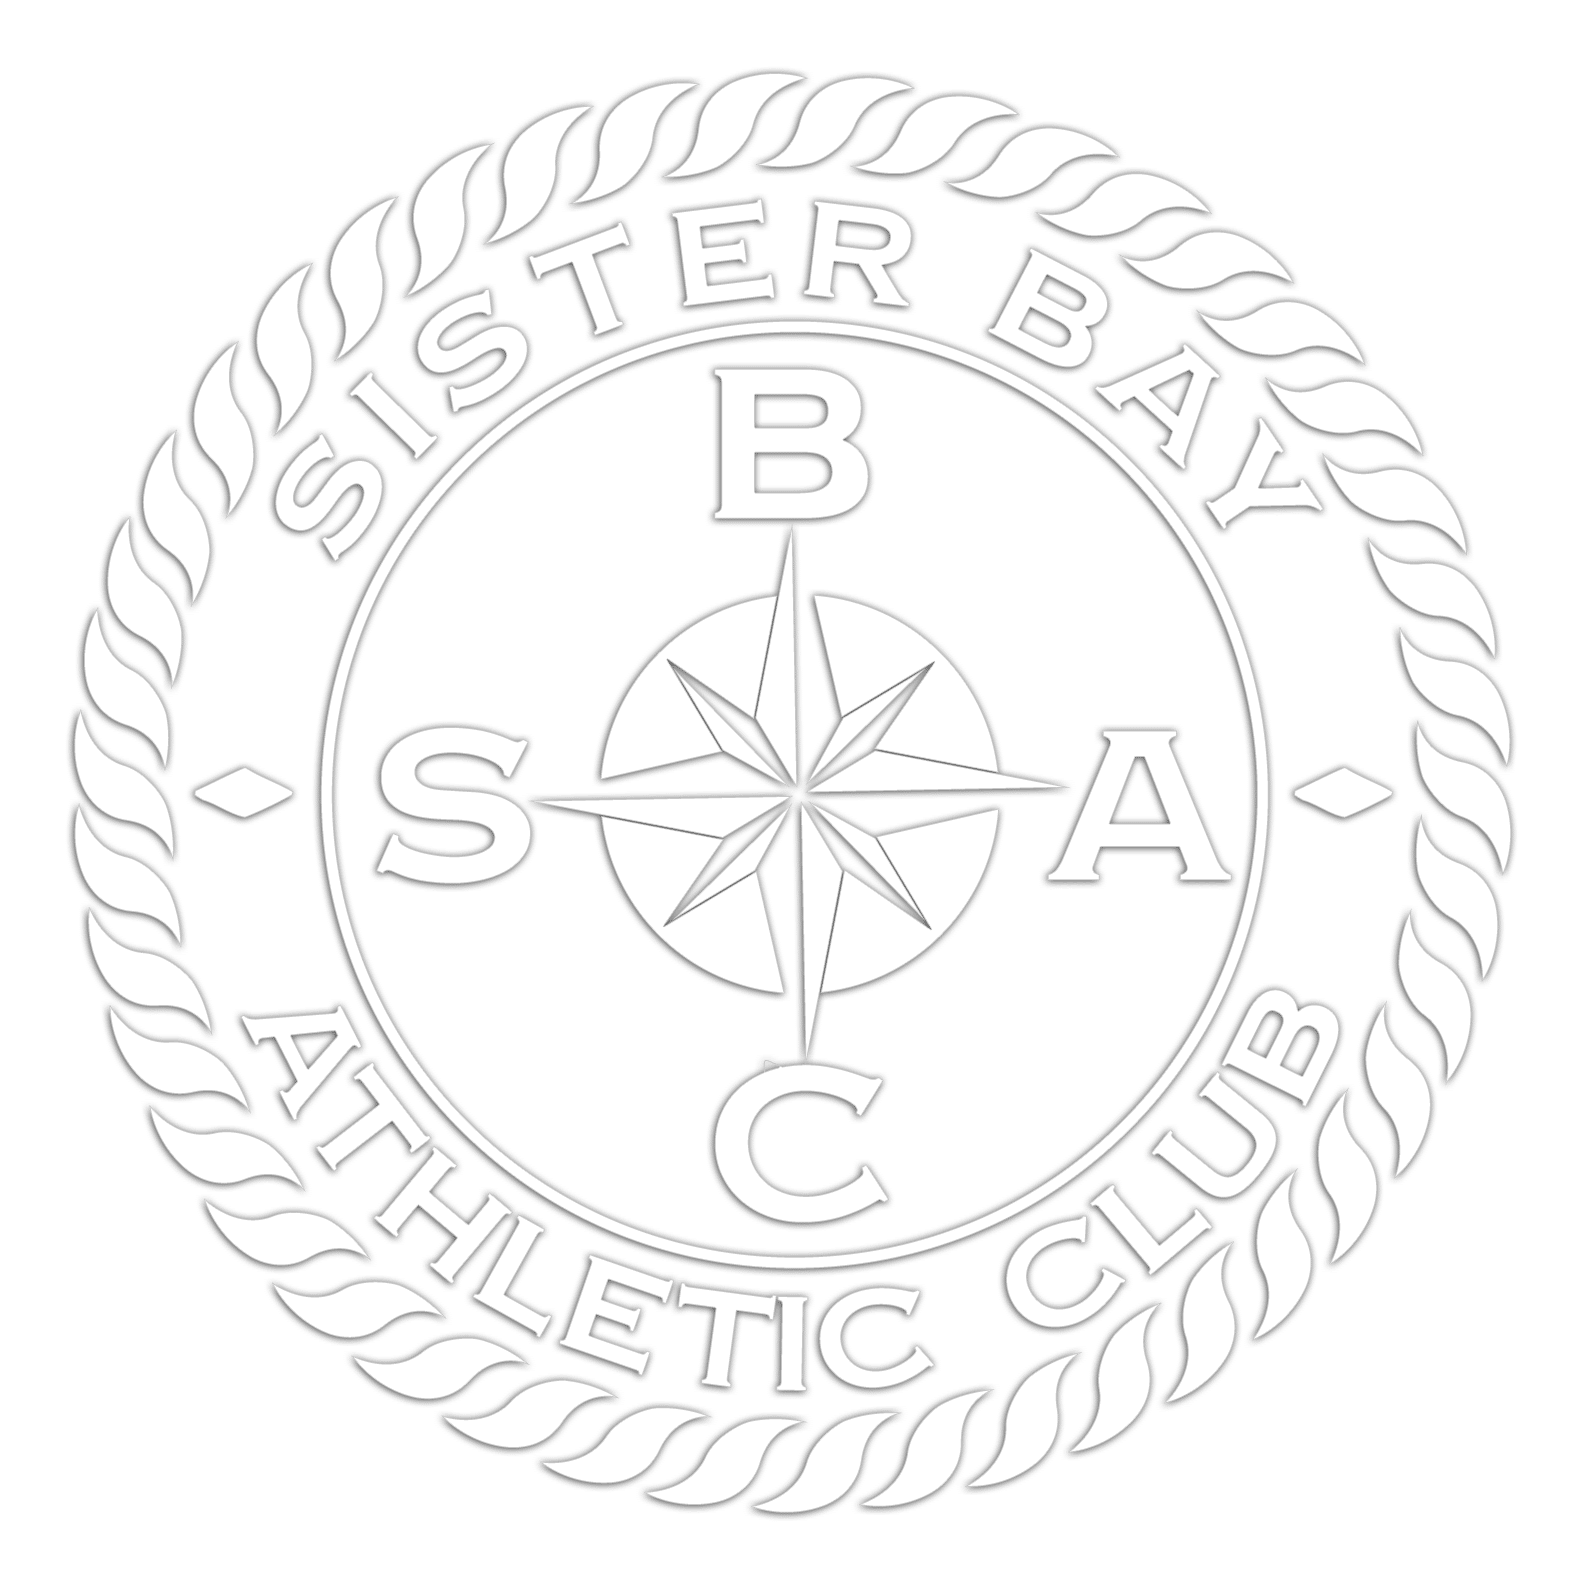 Sister Bay Athletic Club